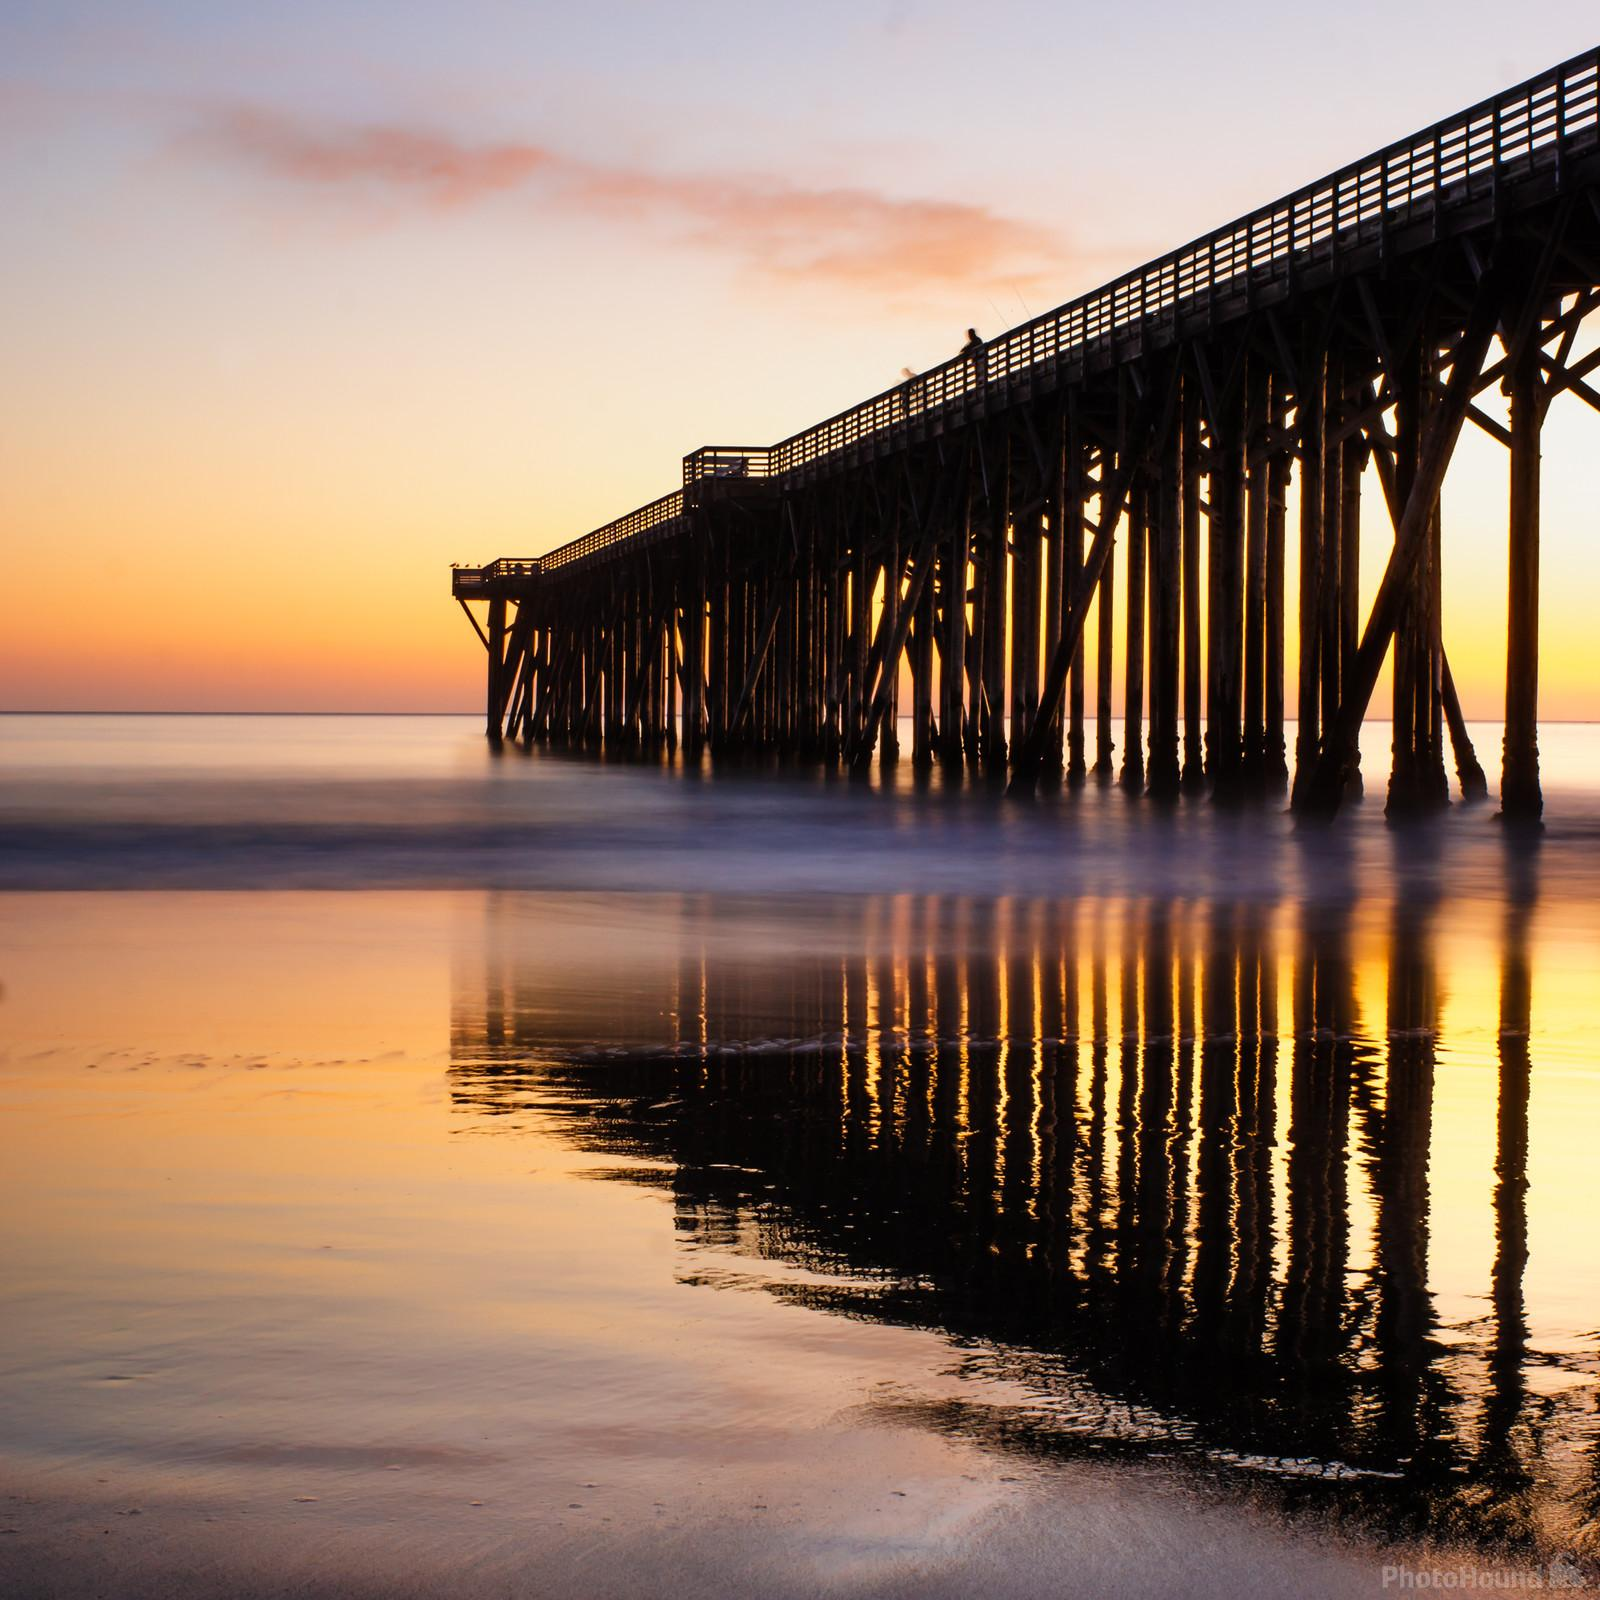 San Simeon Pier at sunset and low tide